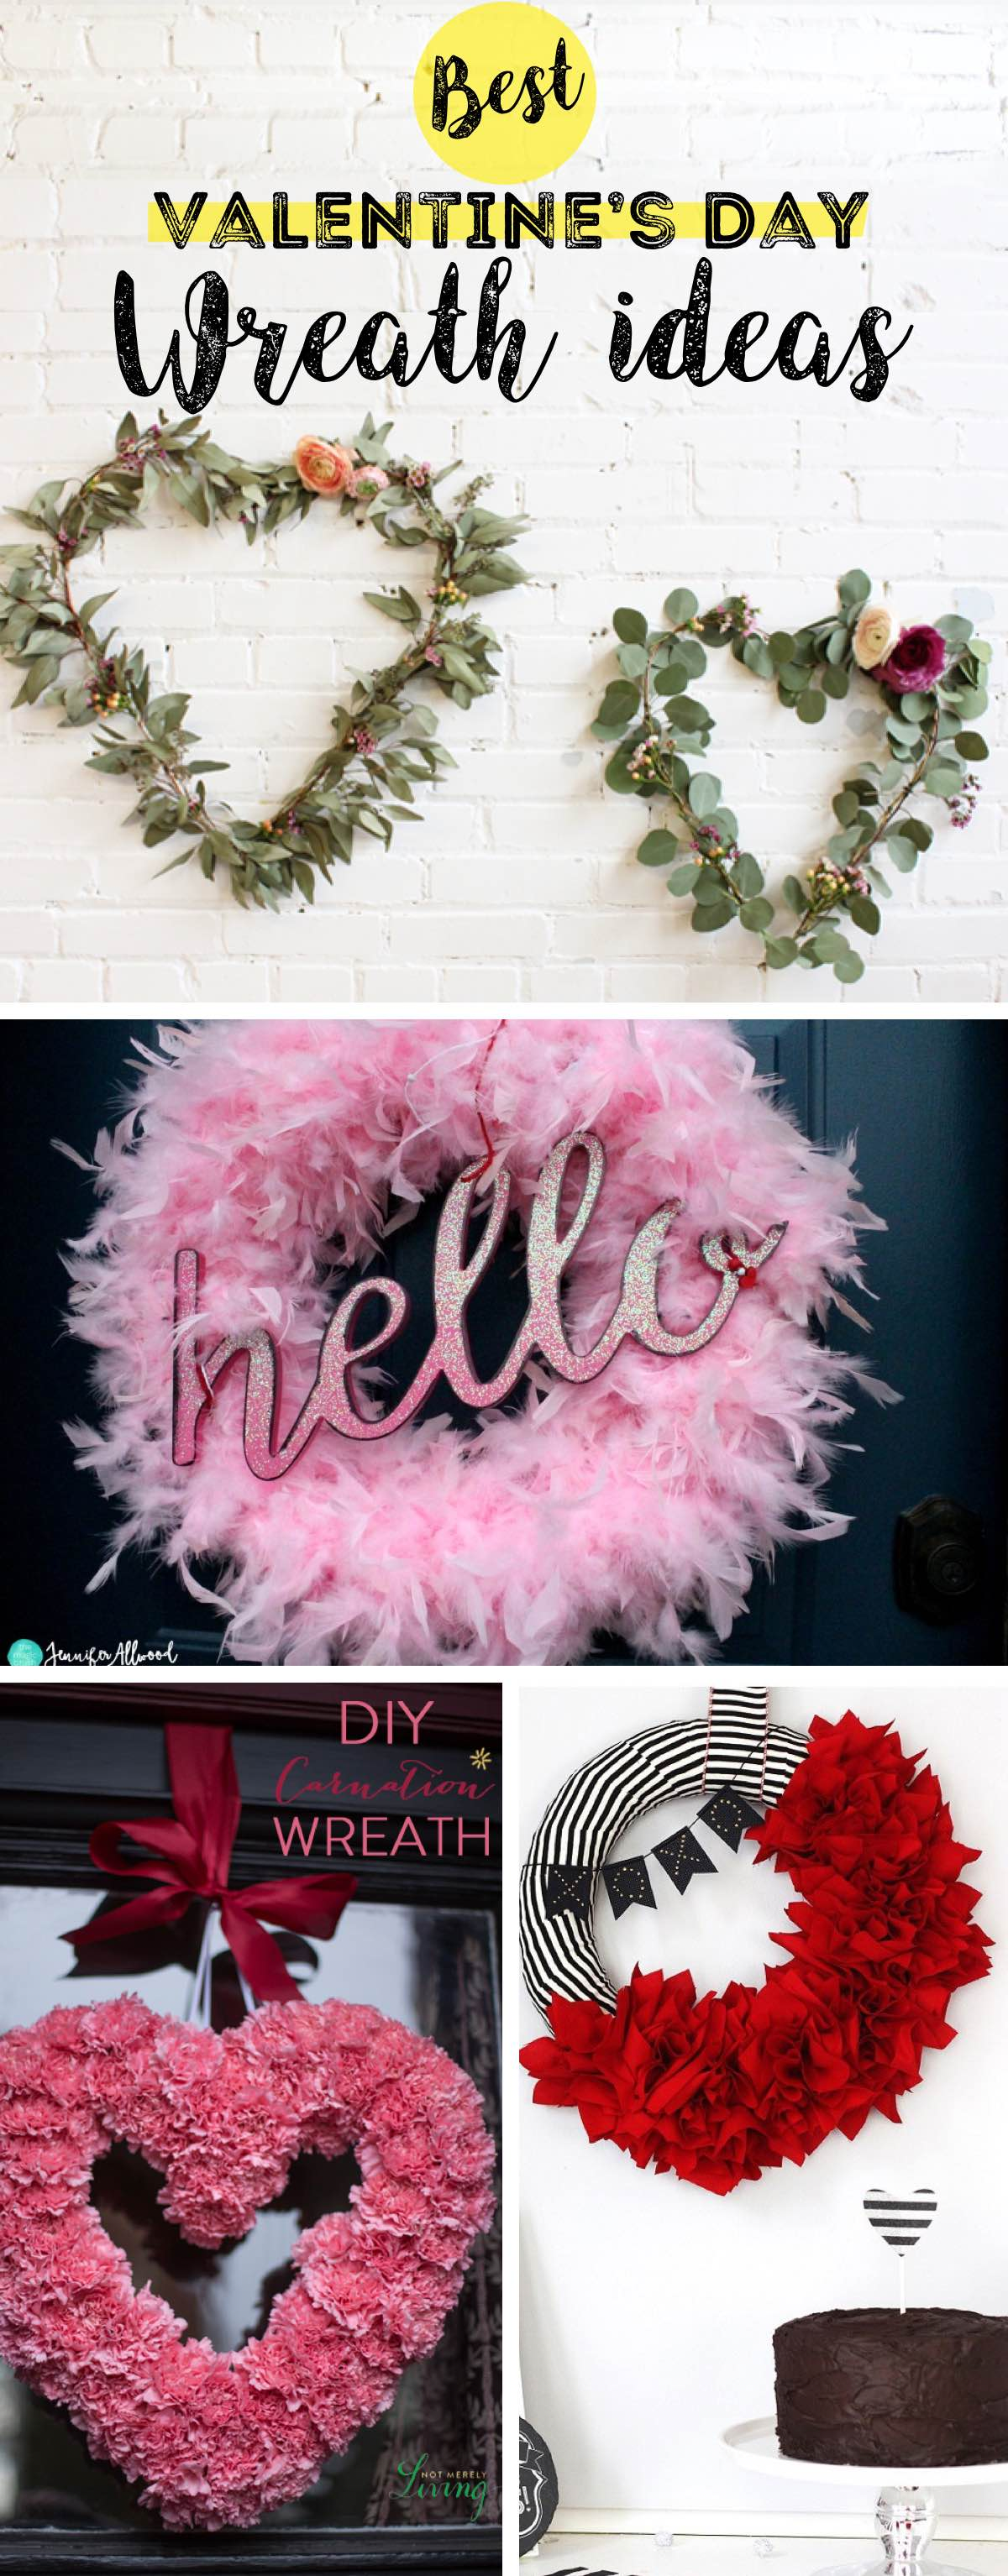 18 Valentine's Day Wreaths Bringing Out An Instant Romantic Touch To The Scene!